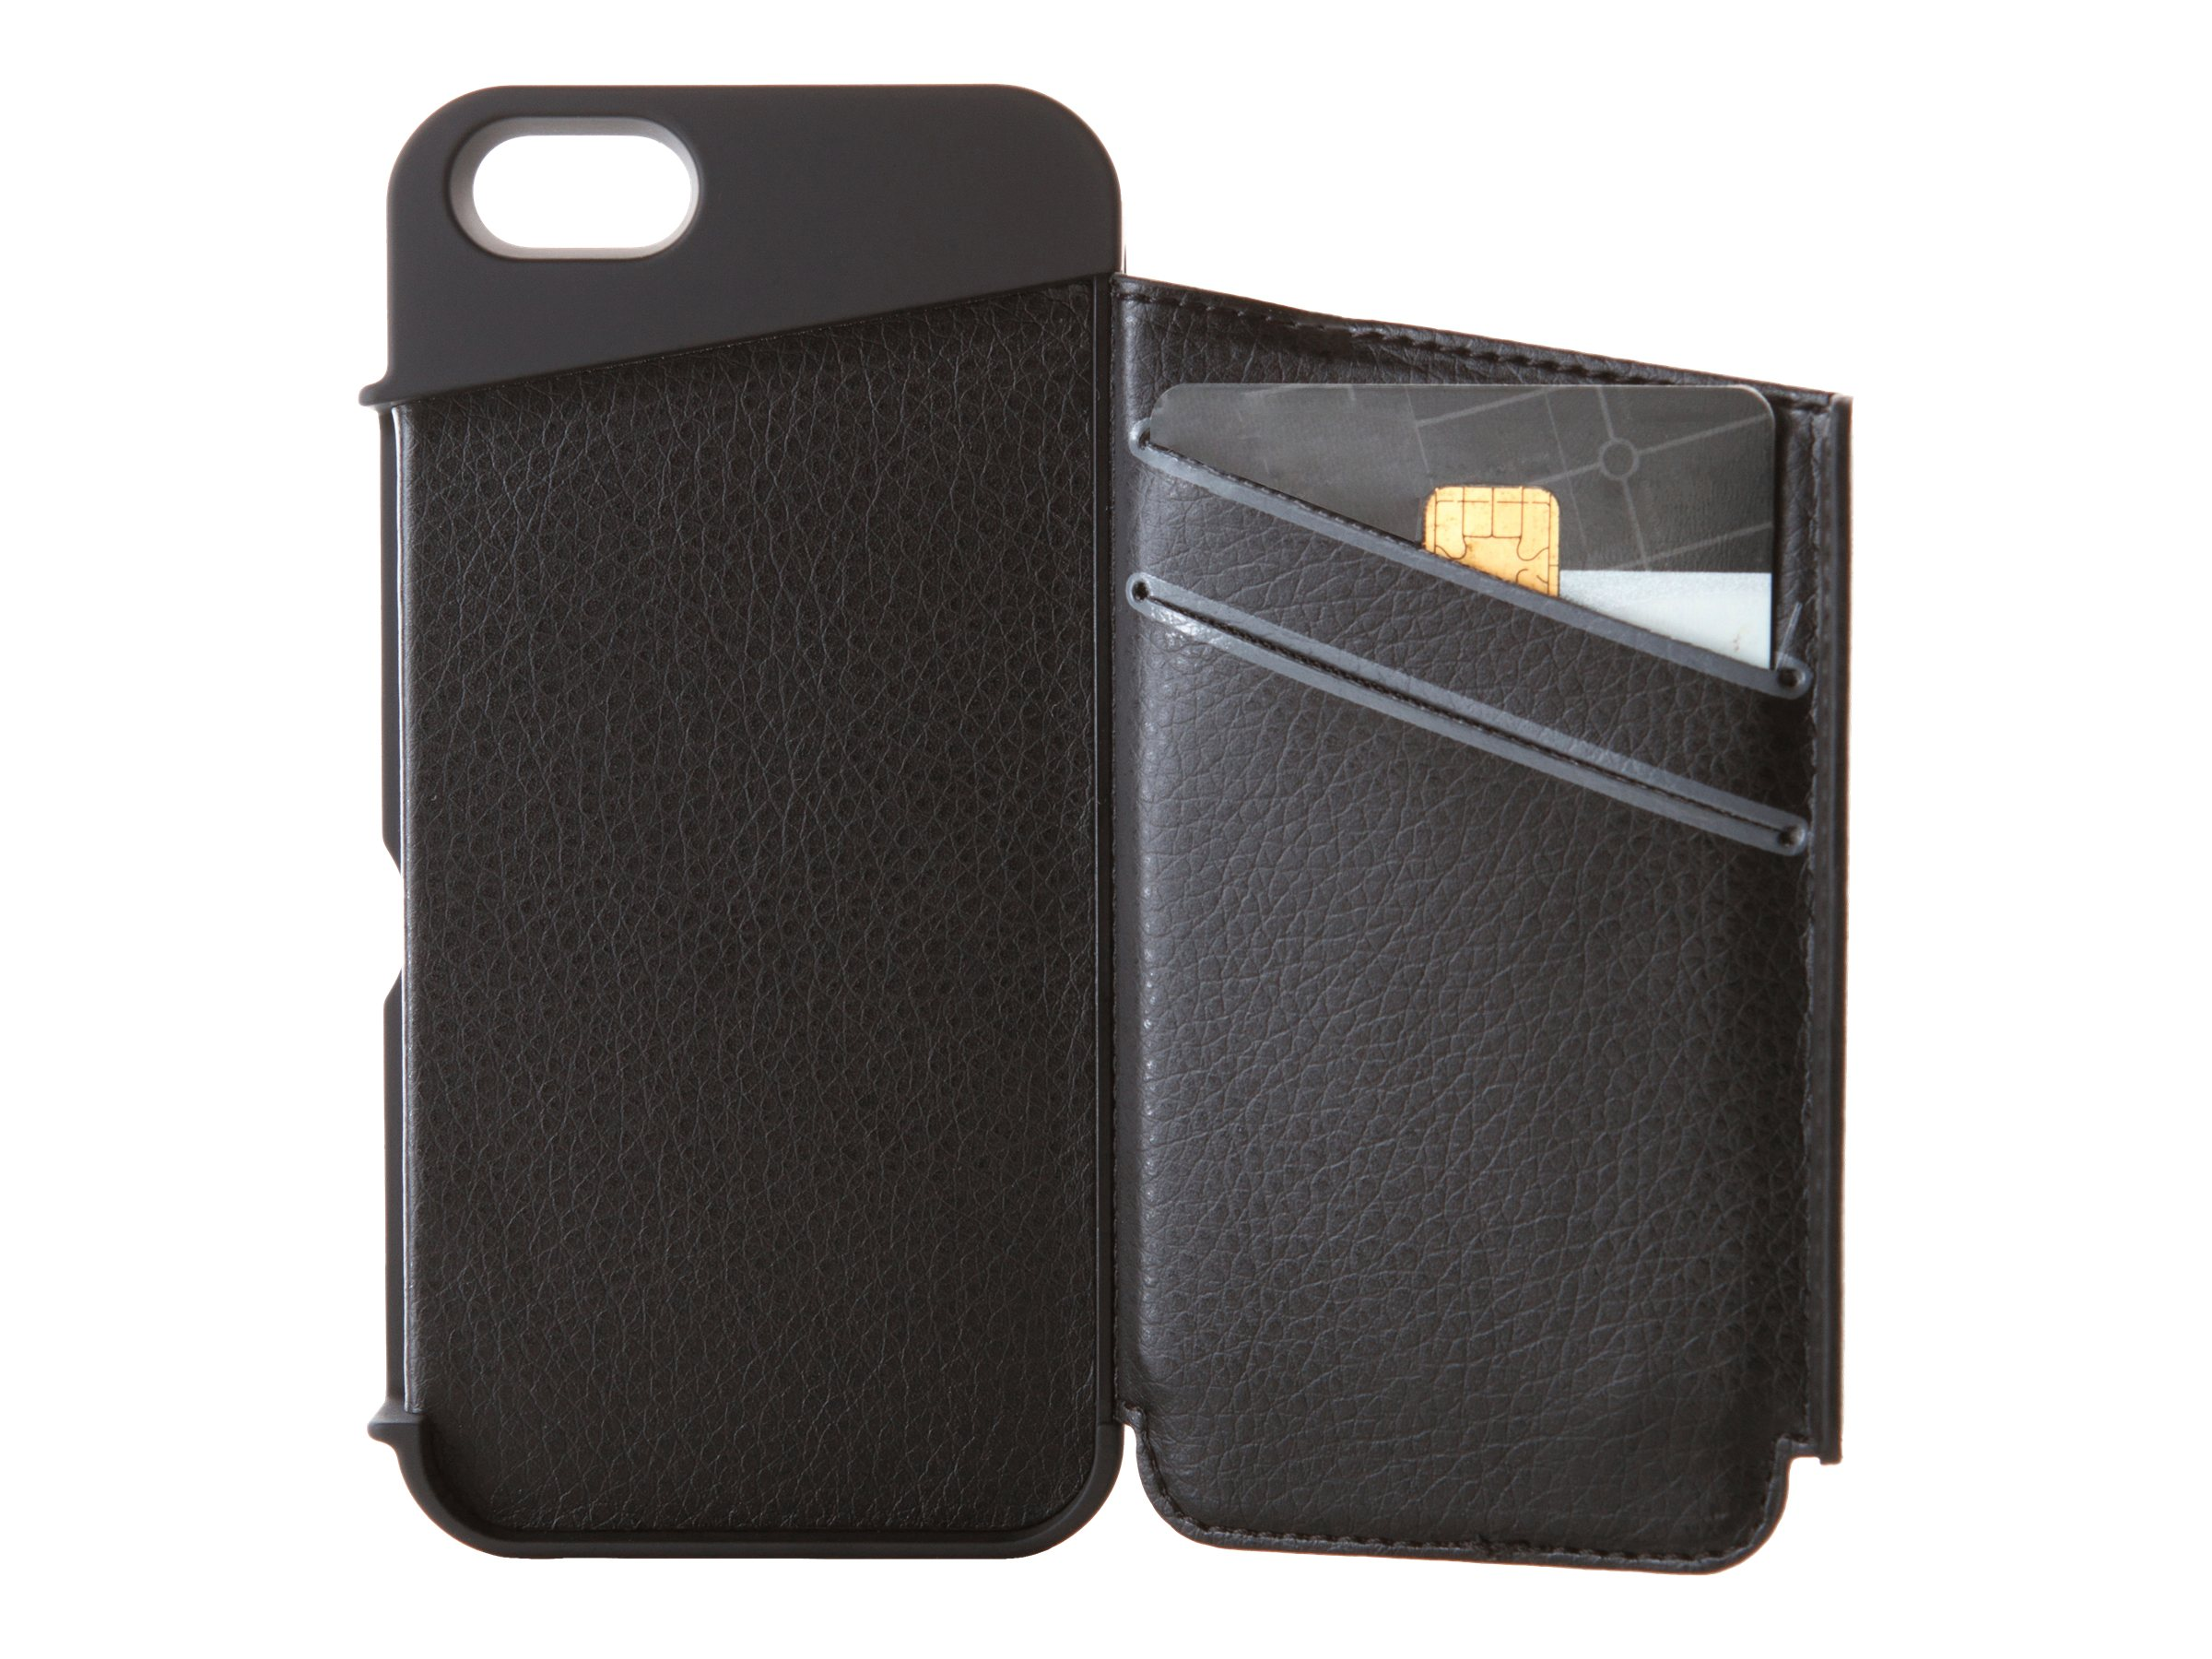 Targus Wallet Case for iPhone 5, Black, THD022US